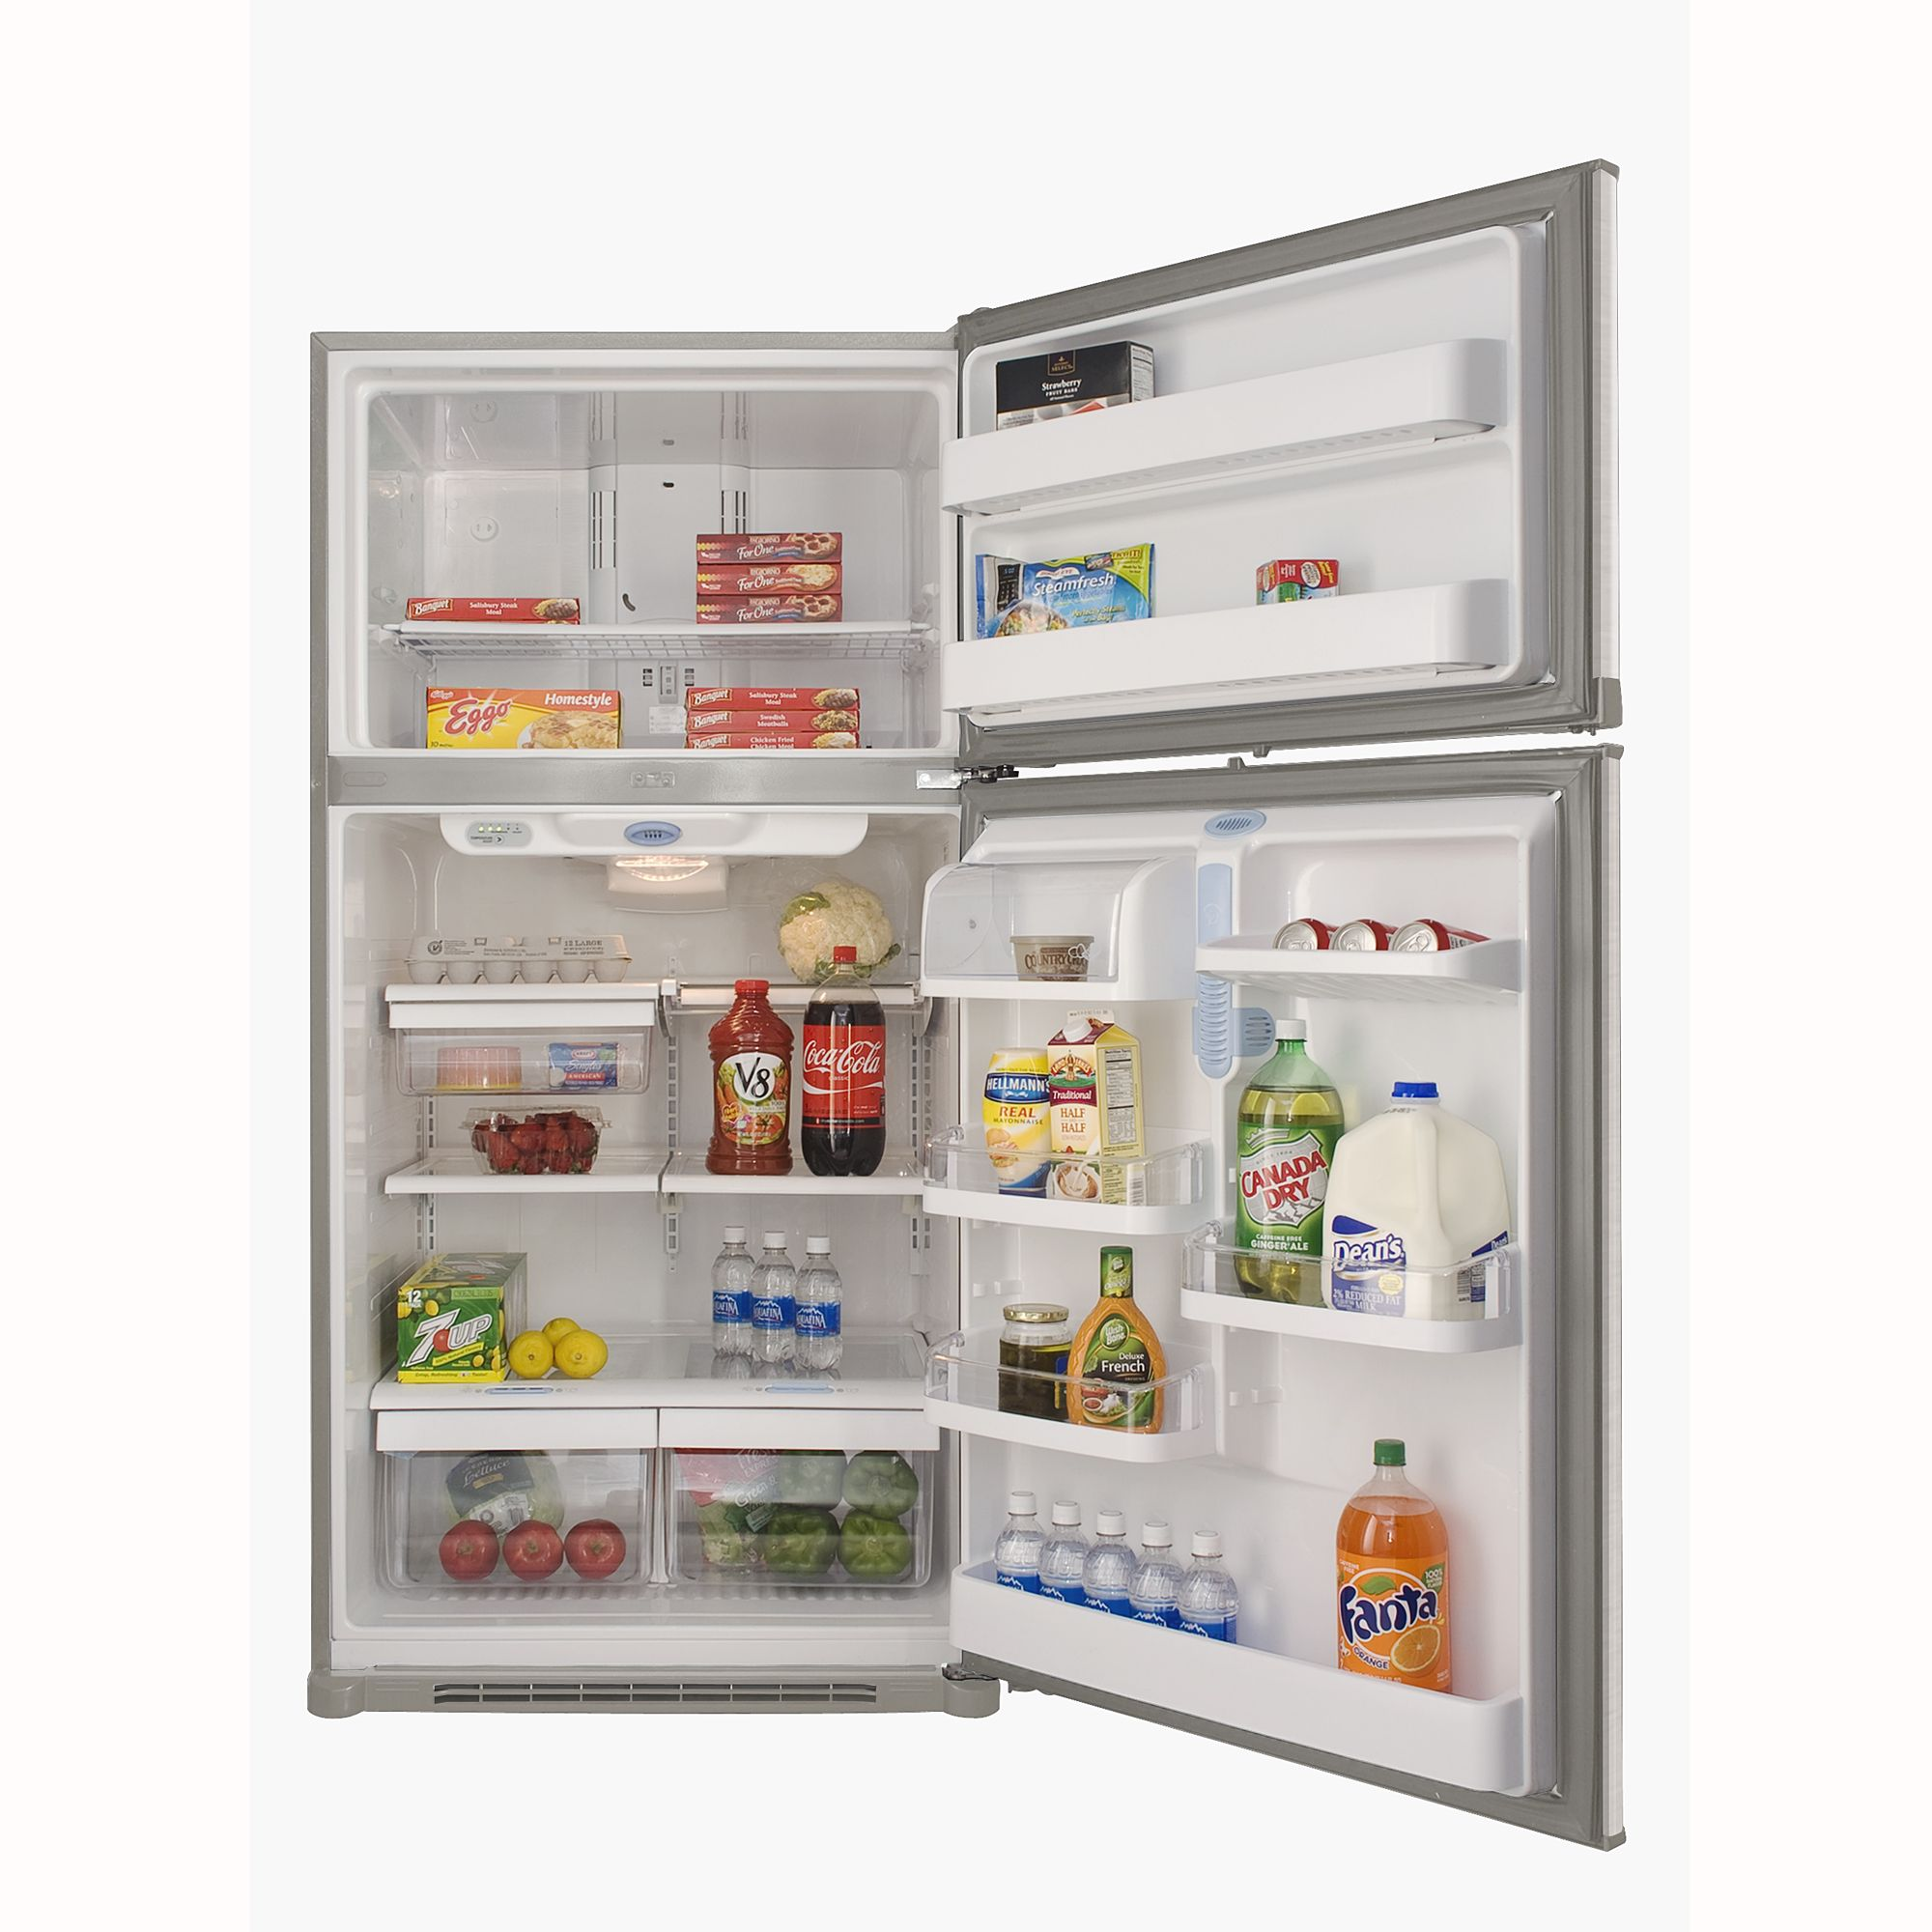 Kenmore 22.1 cu. ft. Top Freezer Refrigerator - Stainless Steel